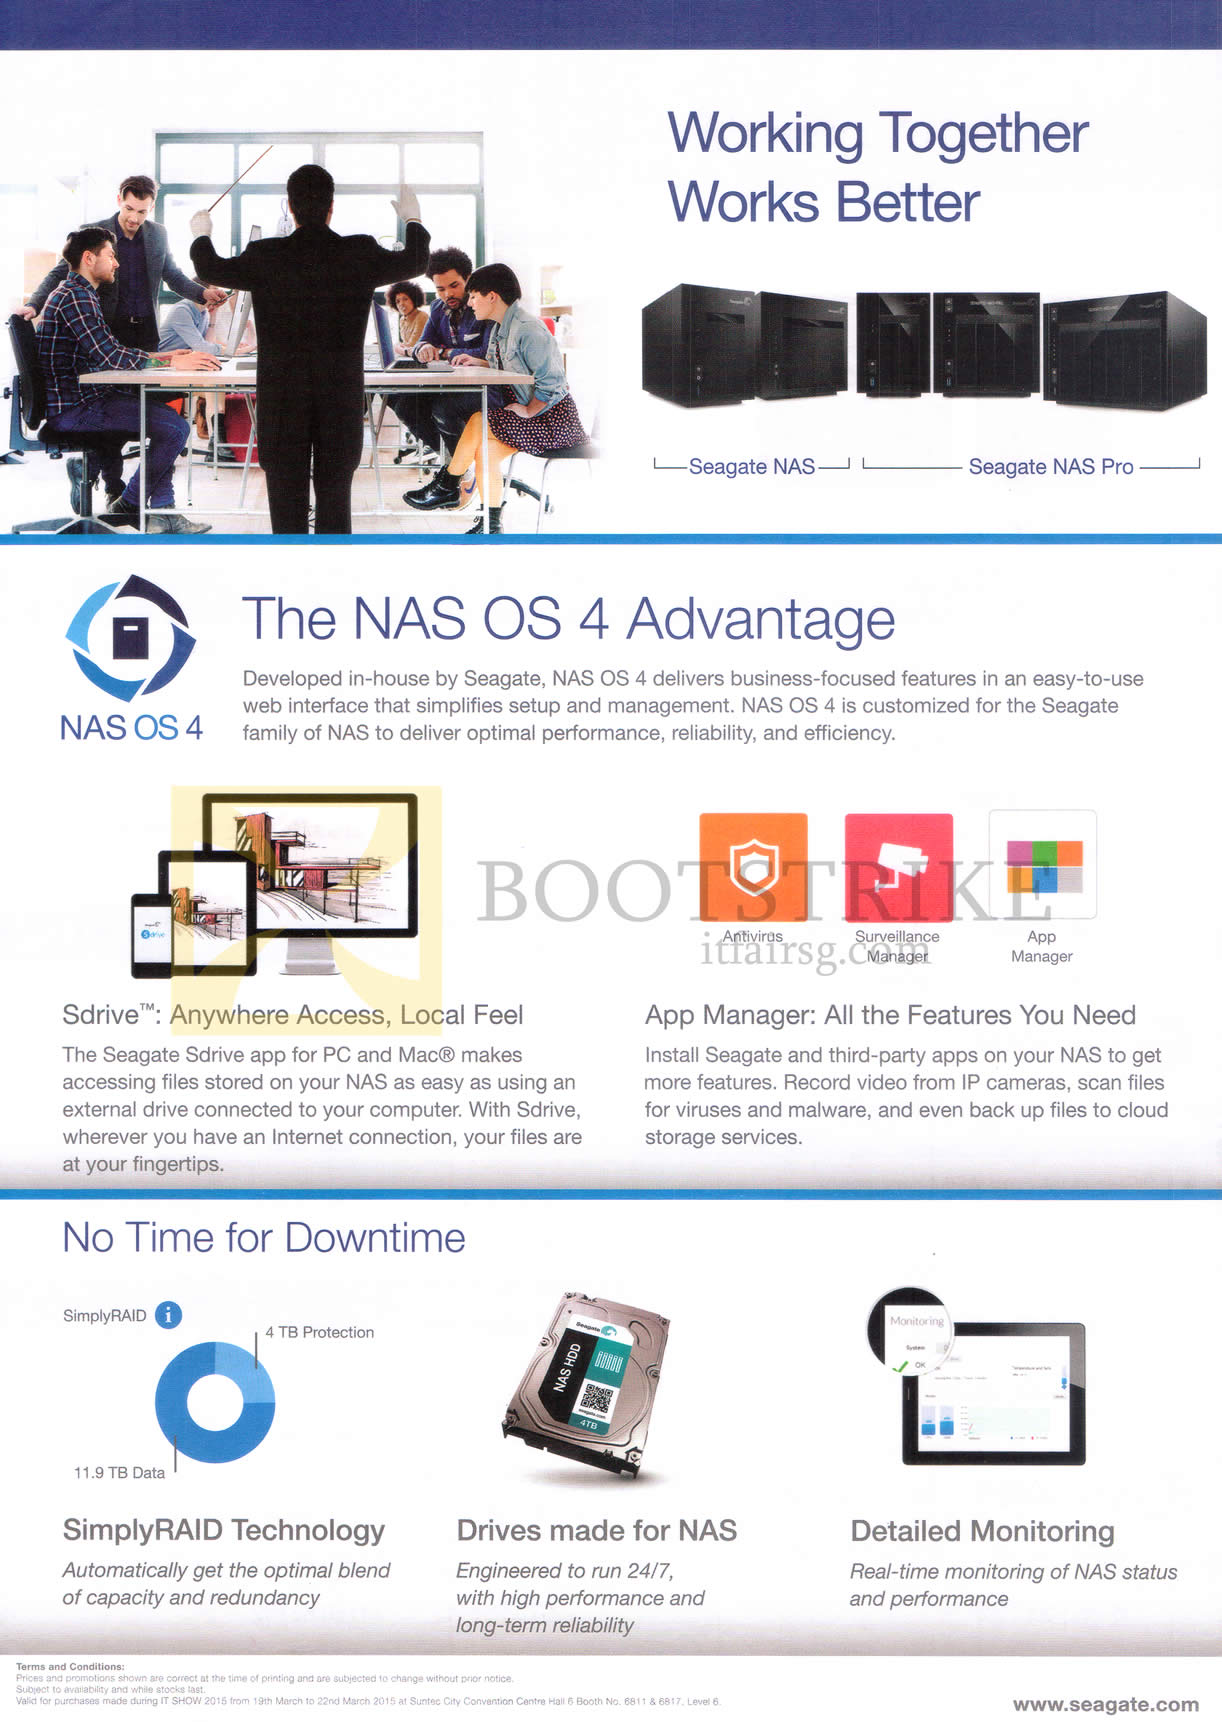 IT SHOW 2015 price list image brochure of Seagate NAS OS 4 Features